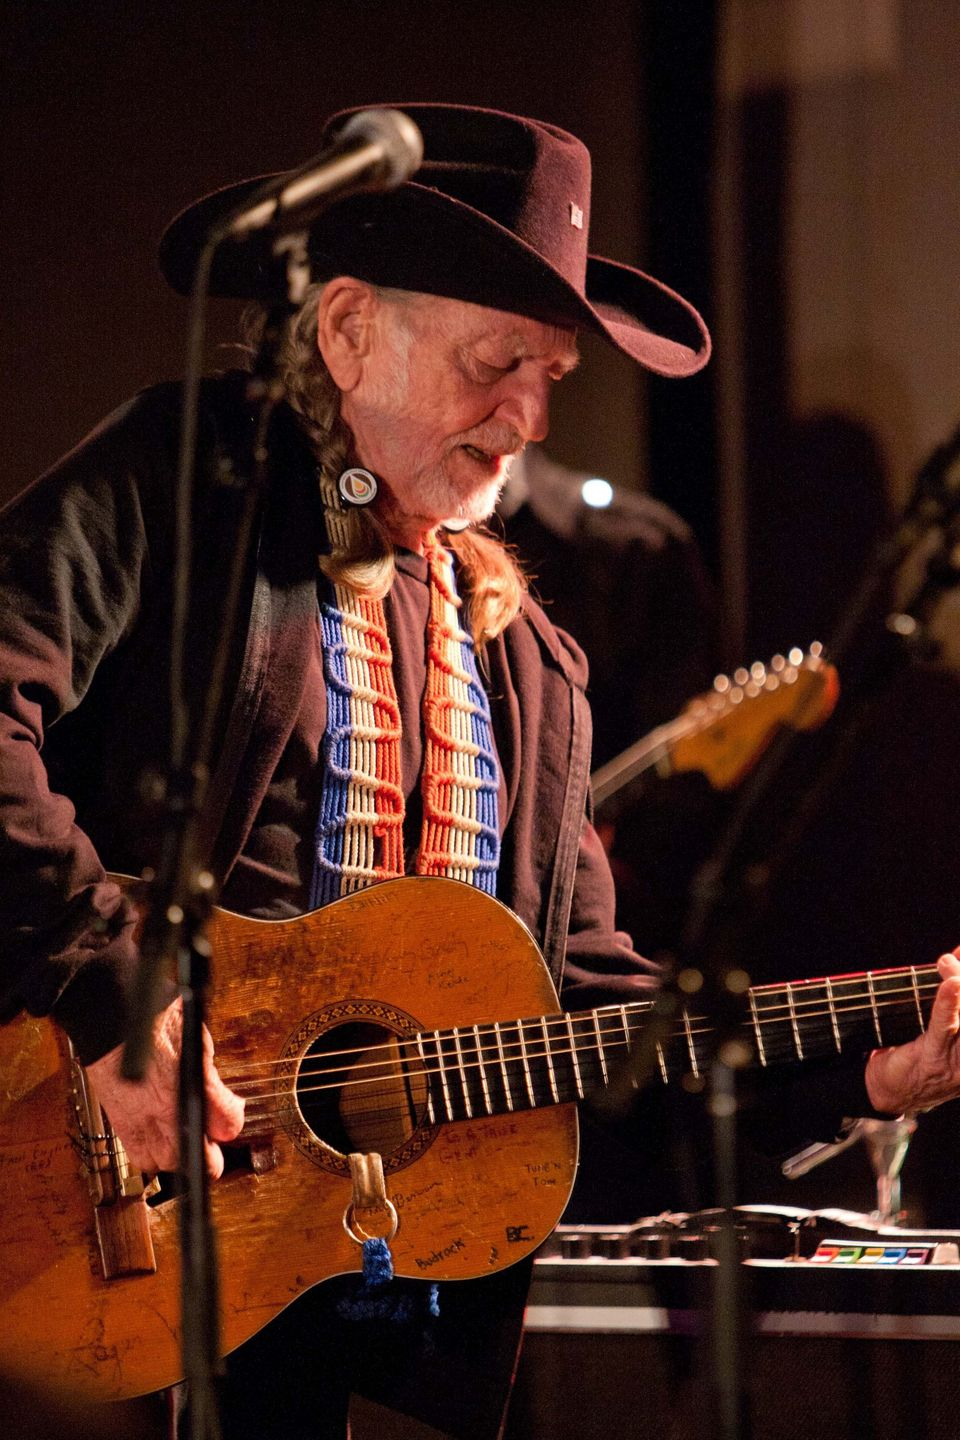 Willie Nelson performs for the crowd.